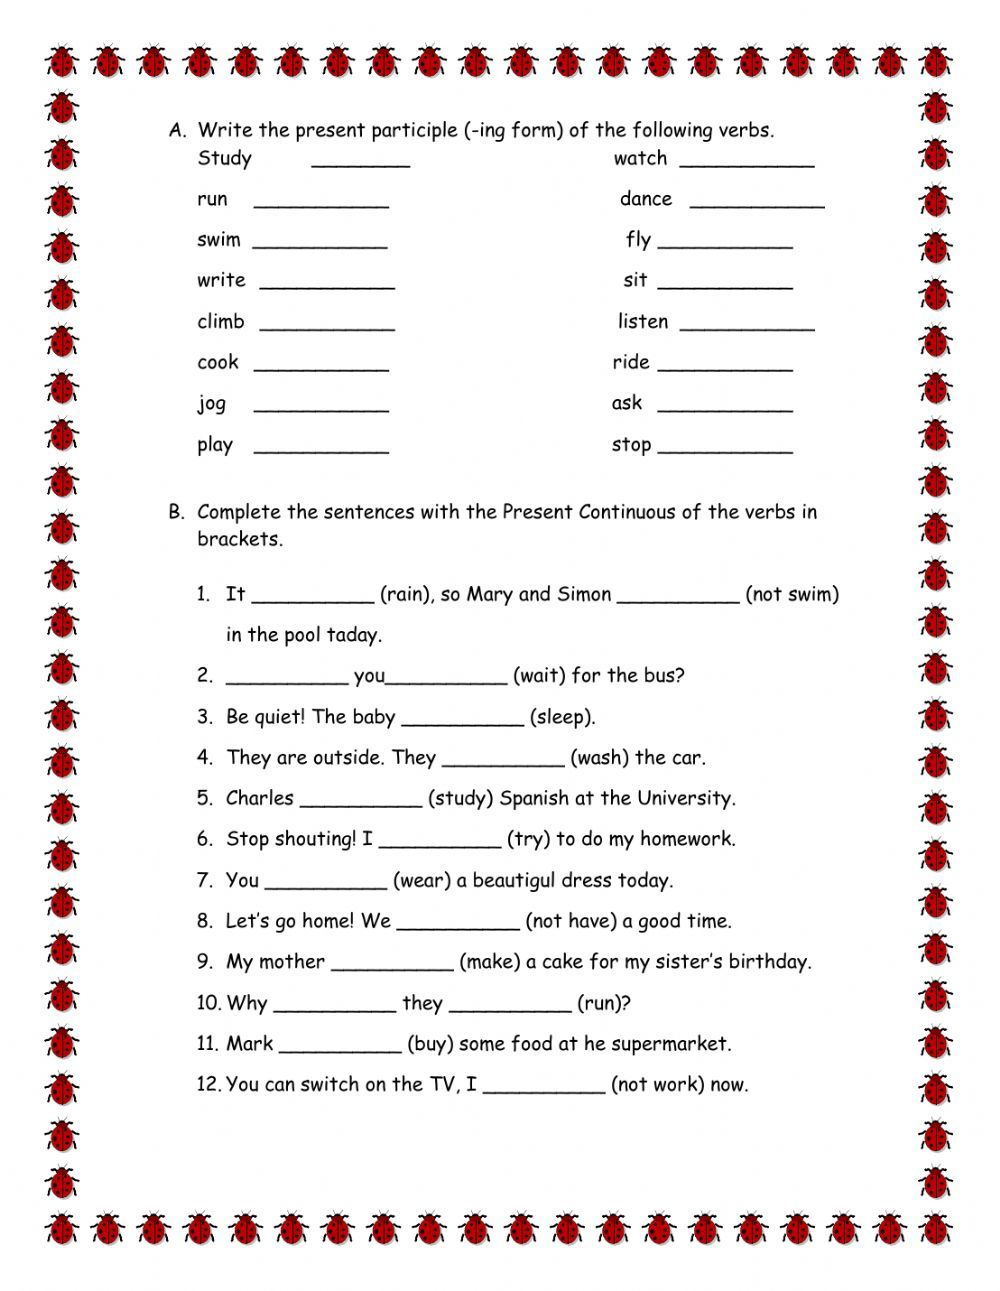 Present Continuous Interactive And Downloadable Worksheet You Can Do The Exercises Online Or Download Spanish Worksheets Kids Worksheets Printables Worksheets [ 1291 x 1000 Pixel ]